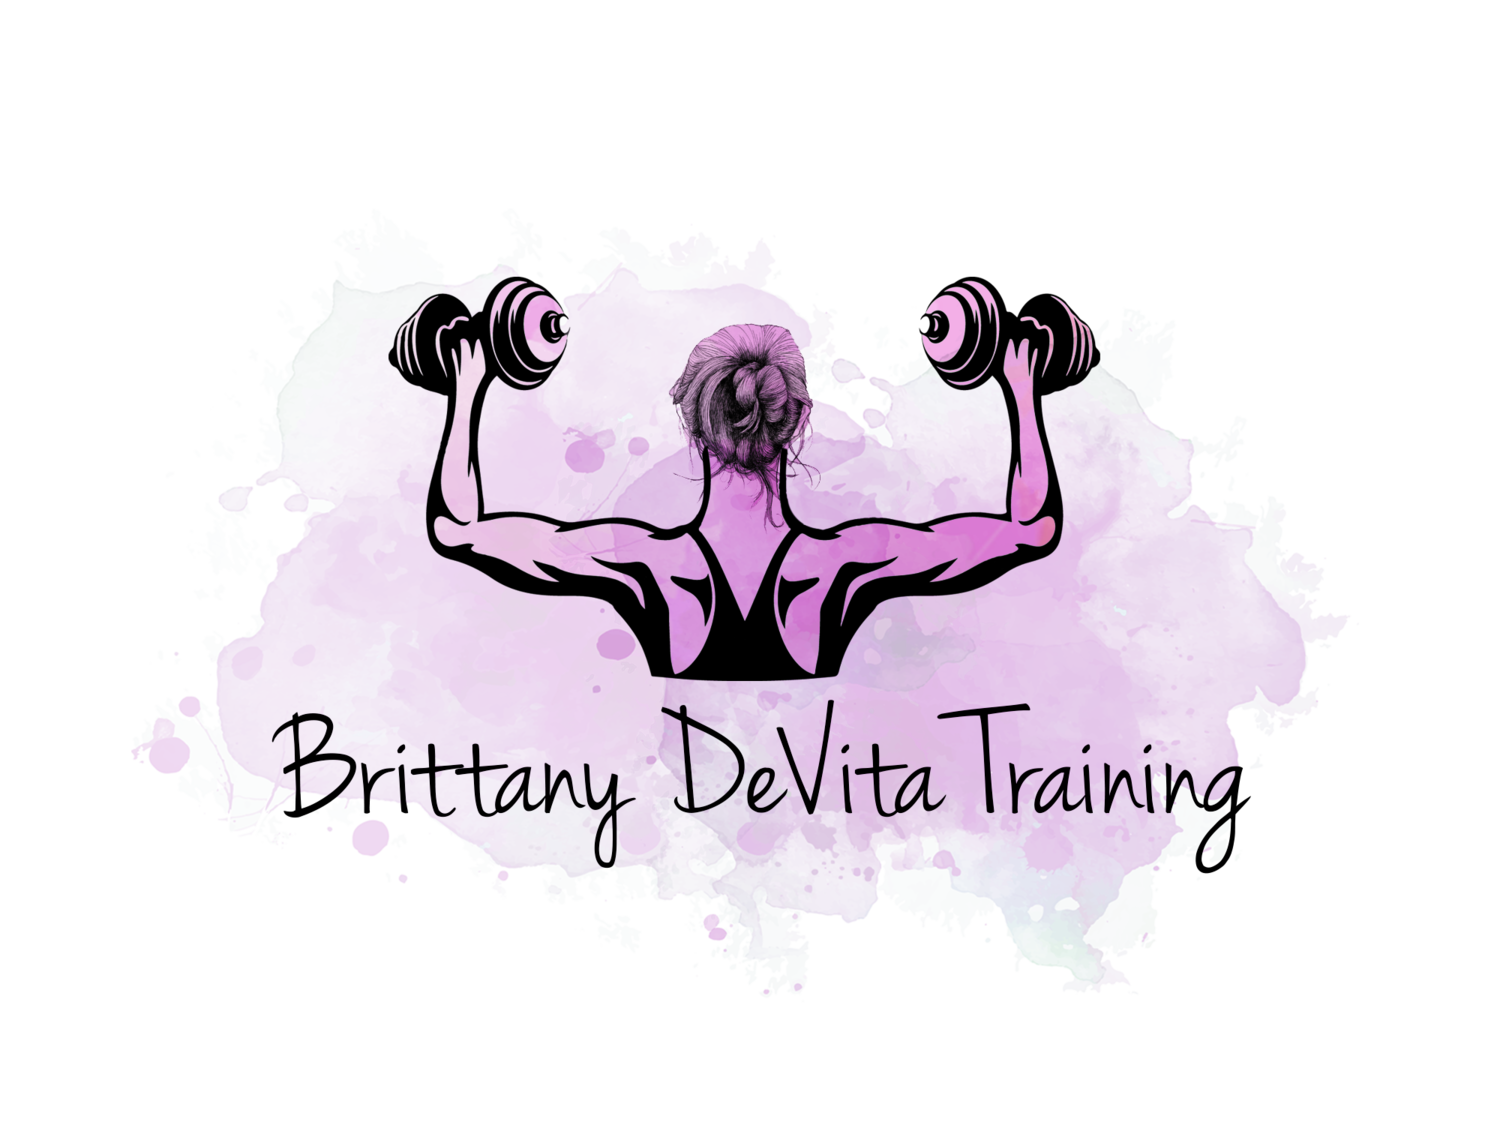 Brittany DeVita Training